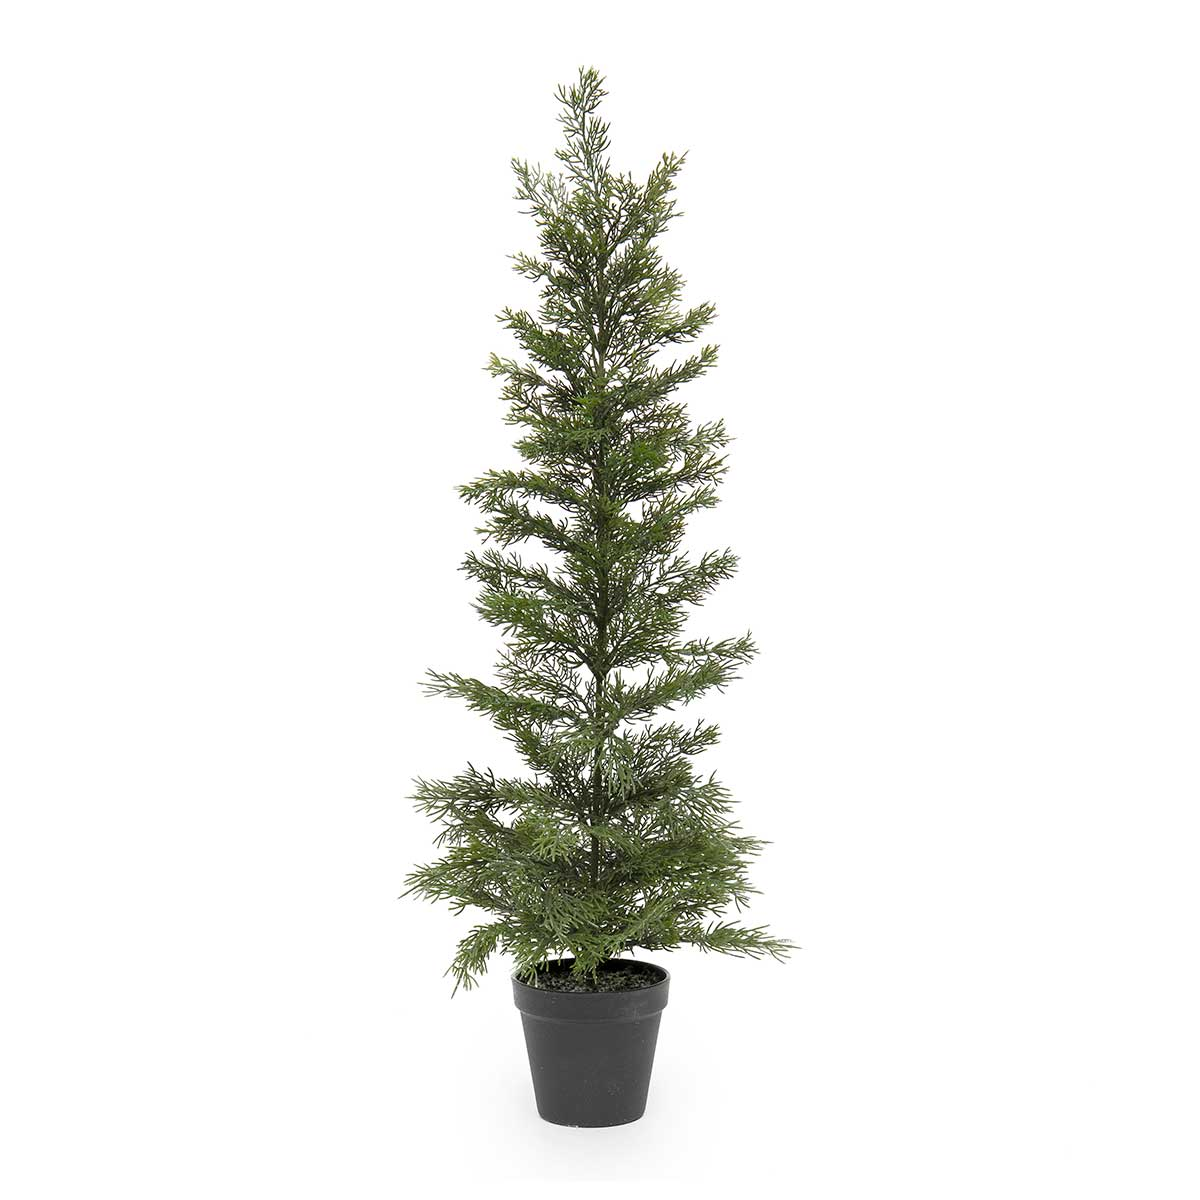 EVERGREEN TREE IN BLACK